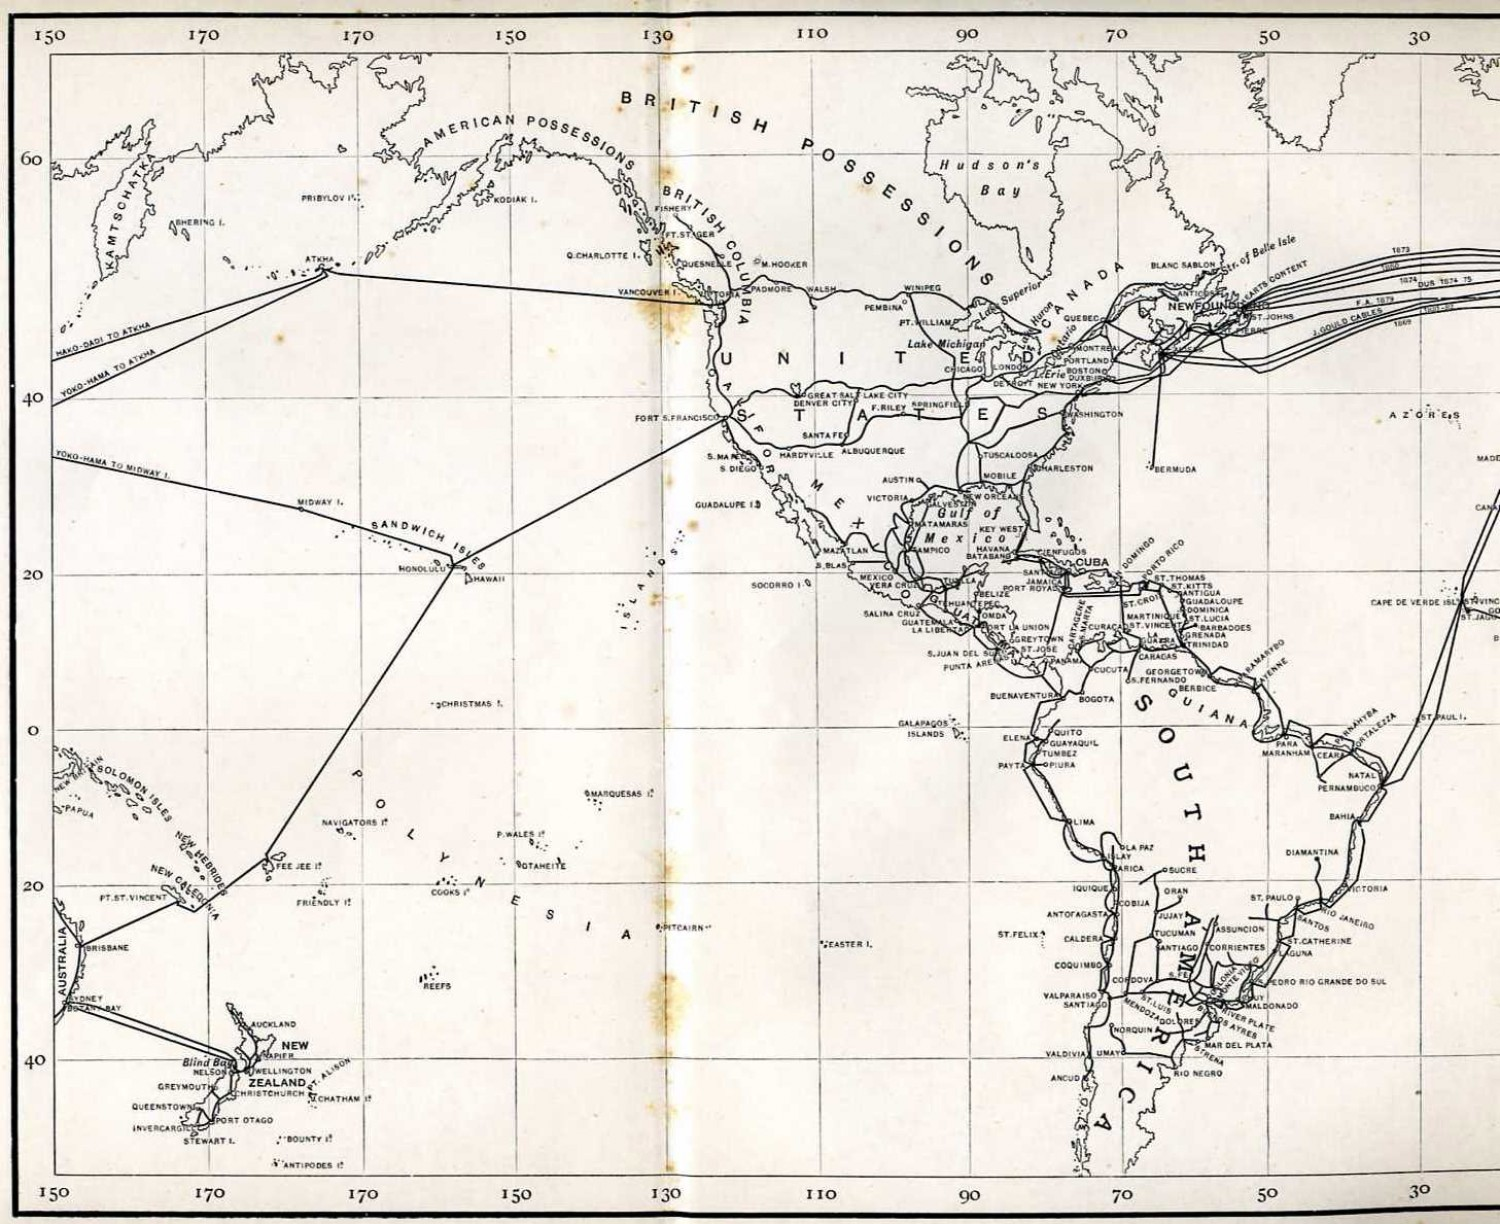 Cable routes - West, 1890